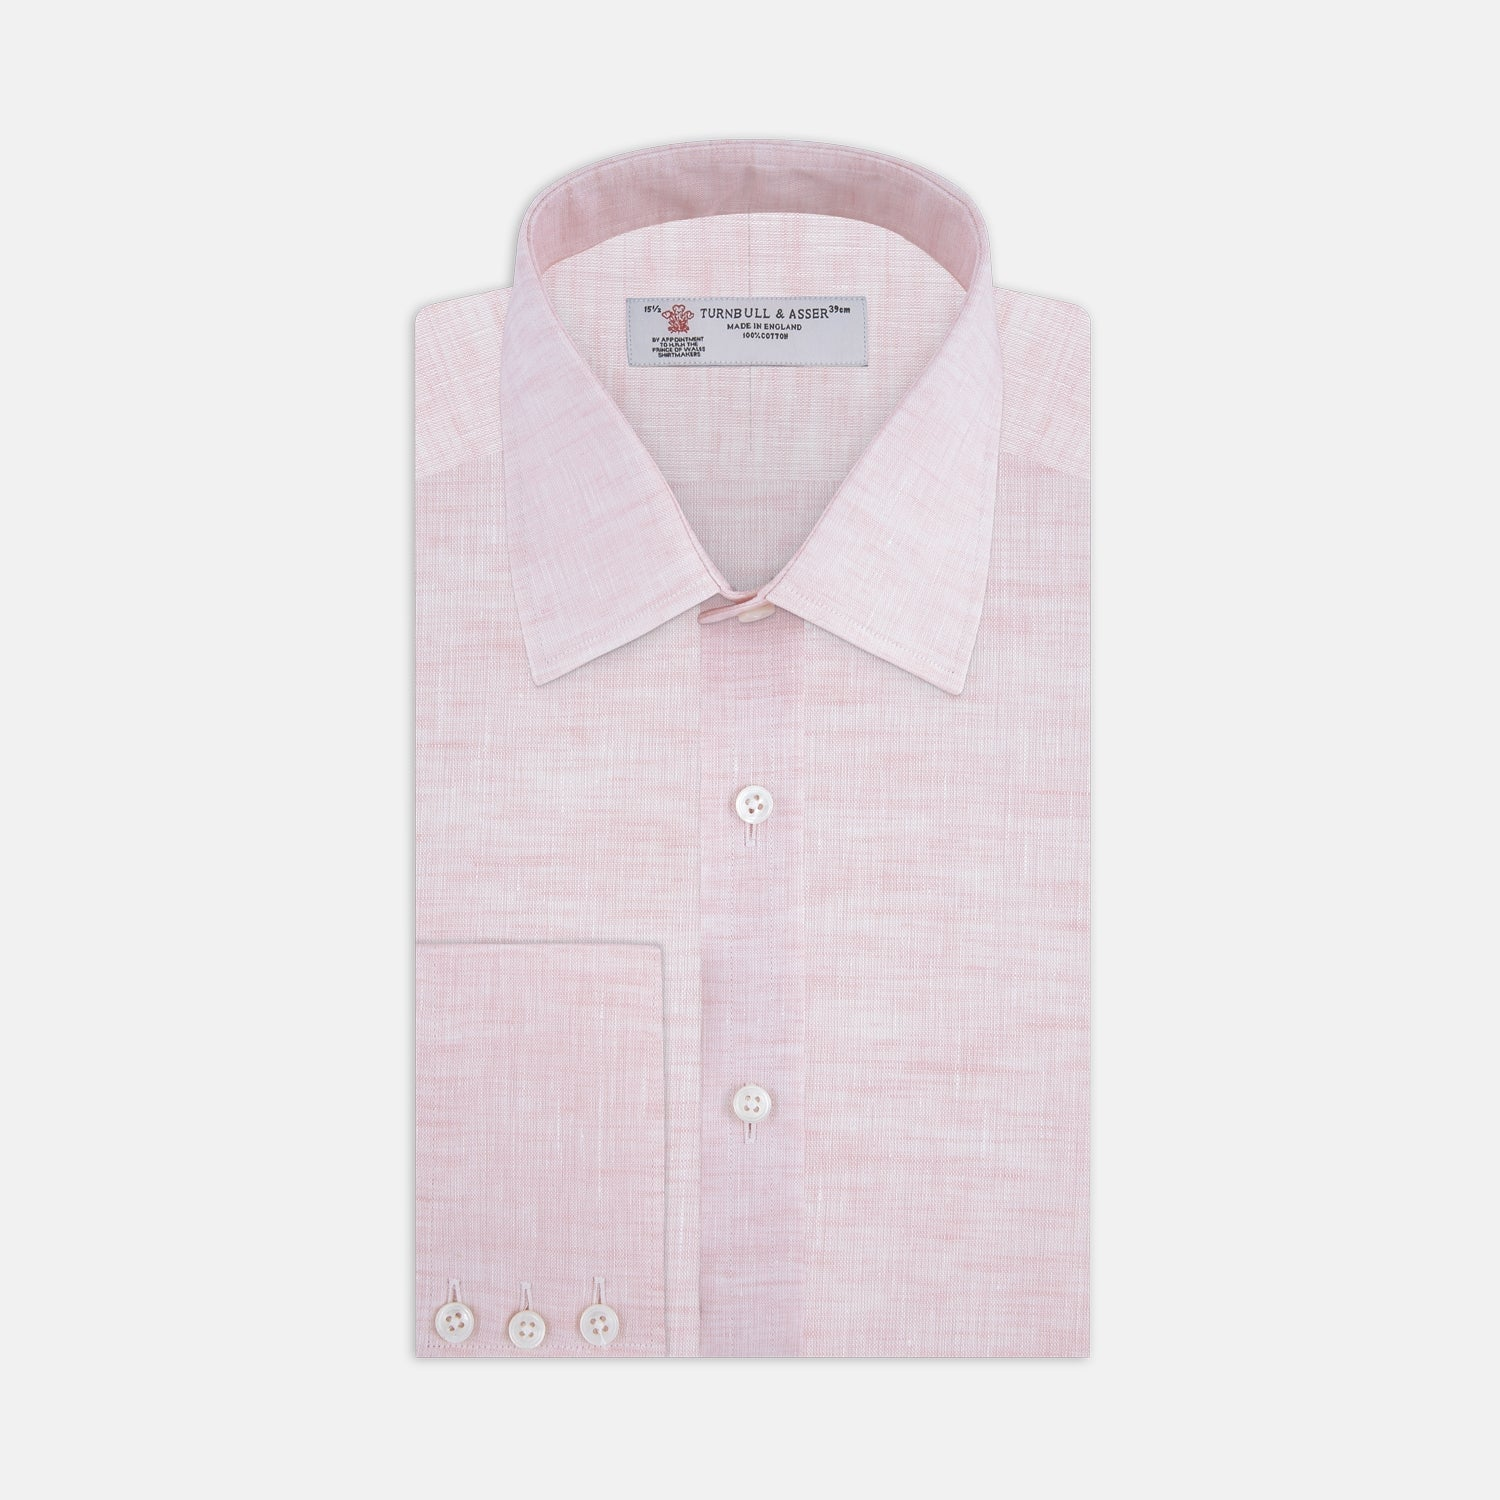 Pink Linen Shirt with T&A Collar and 3-Button Cuffs - 17.5 from Turnbull & Asser